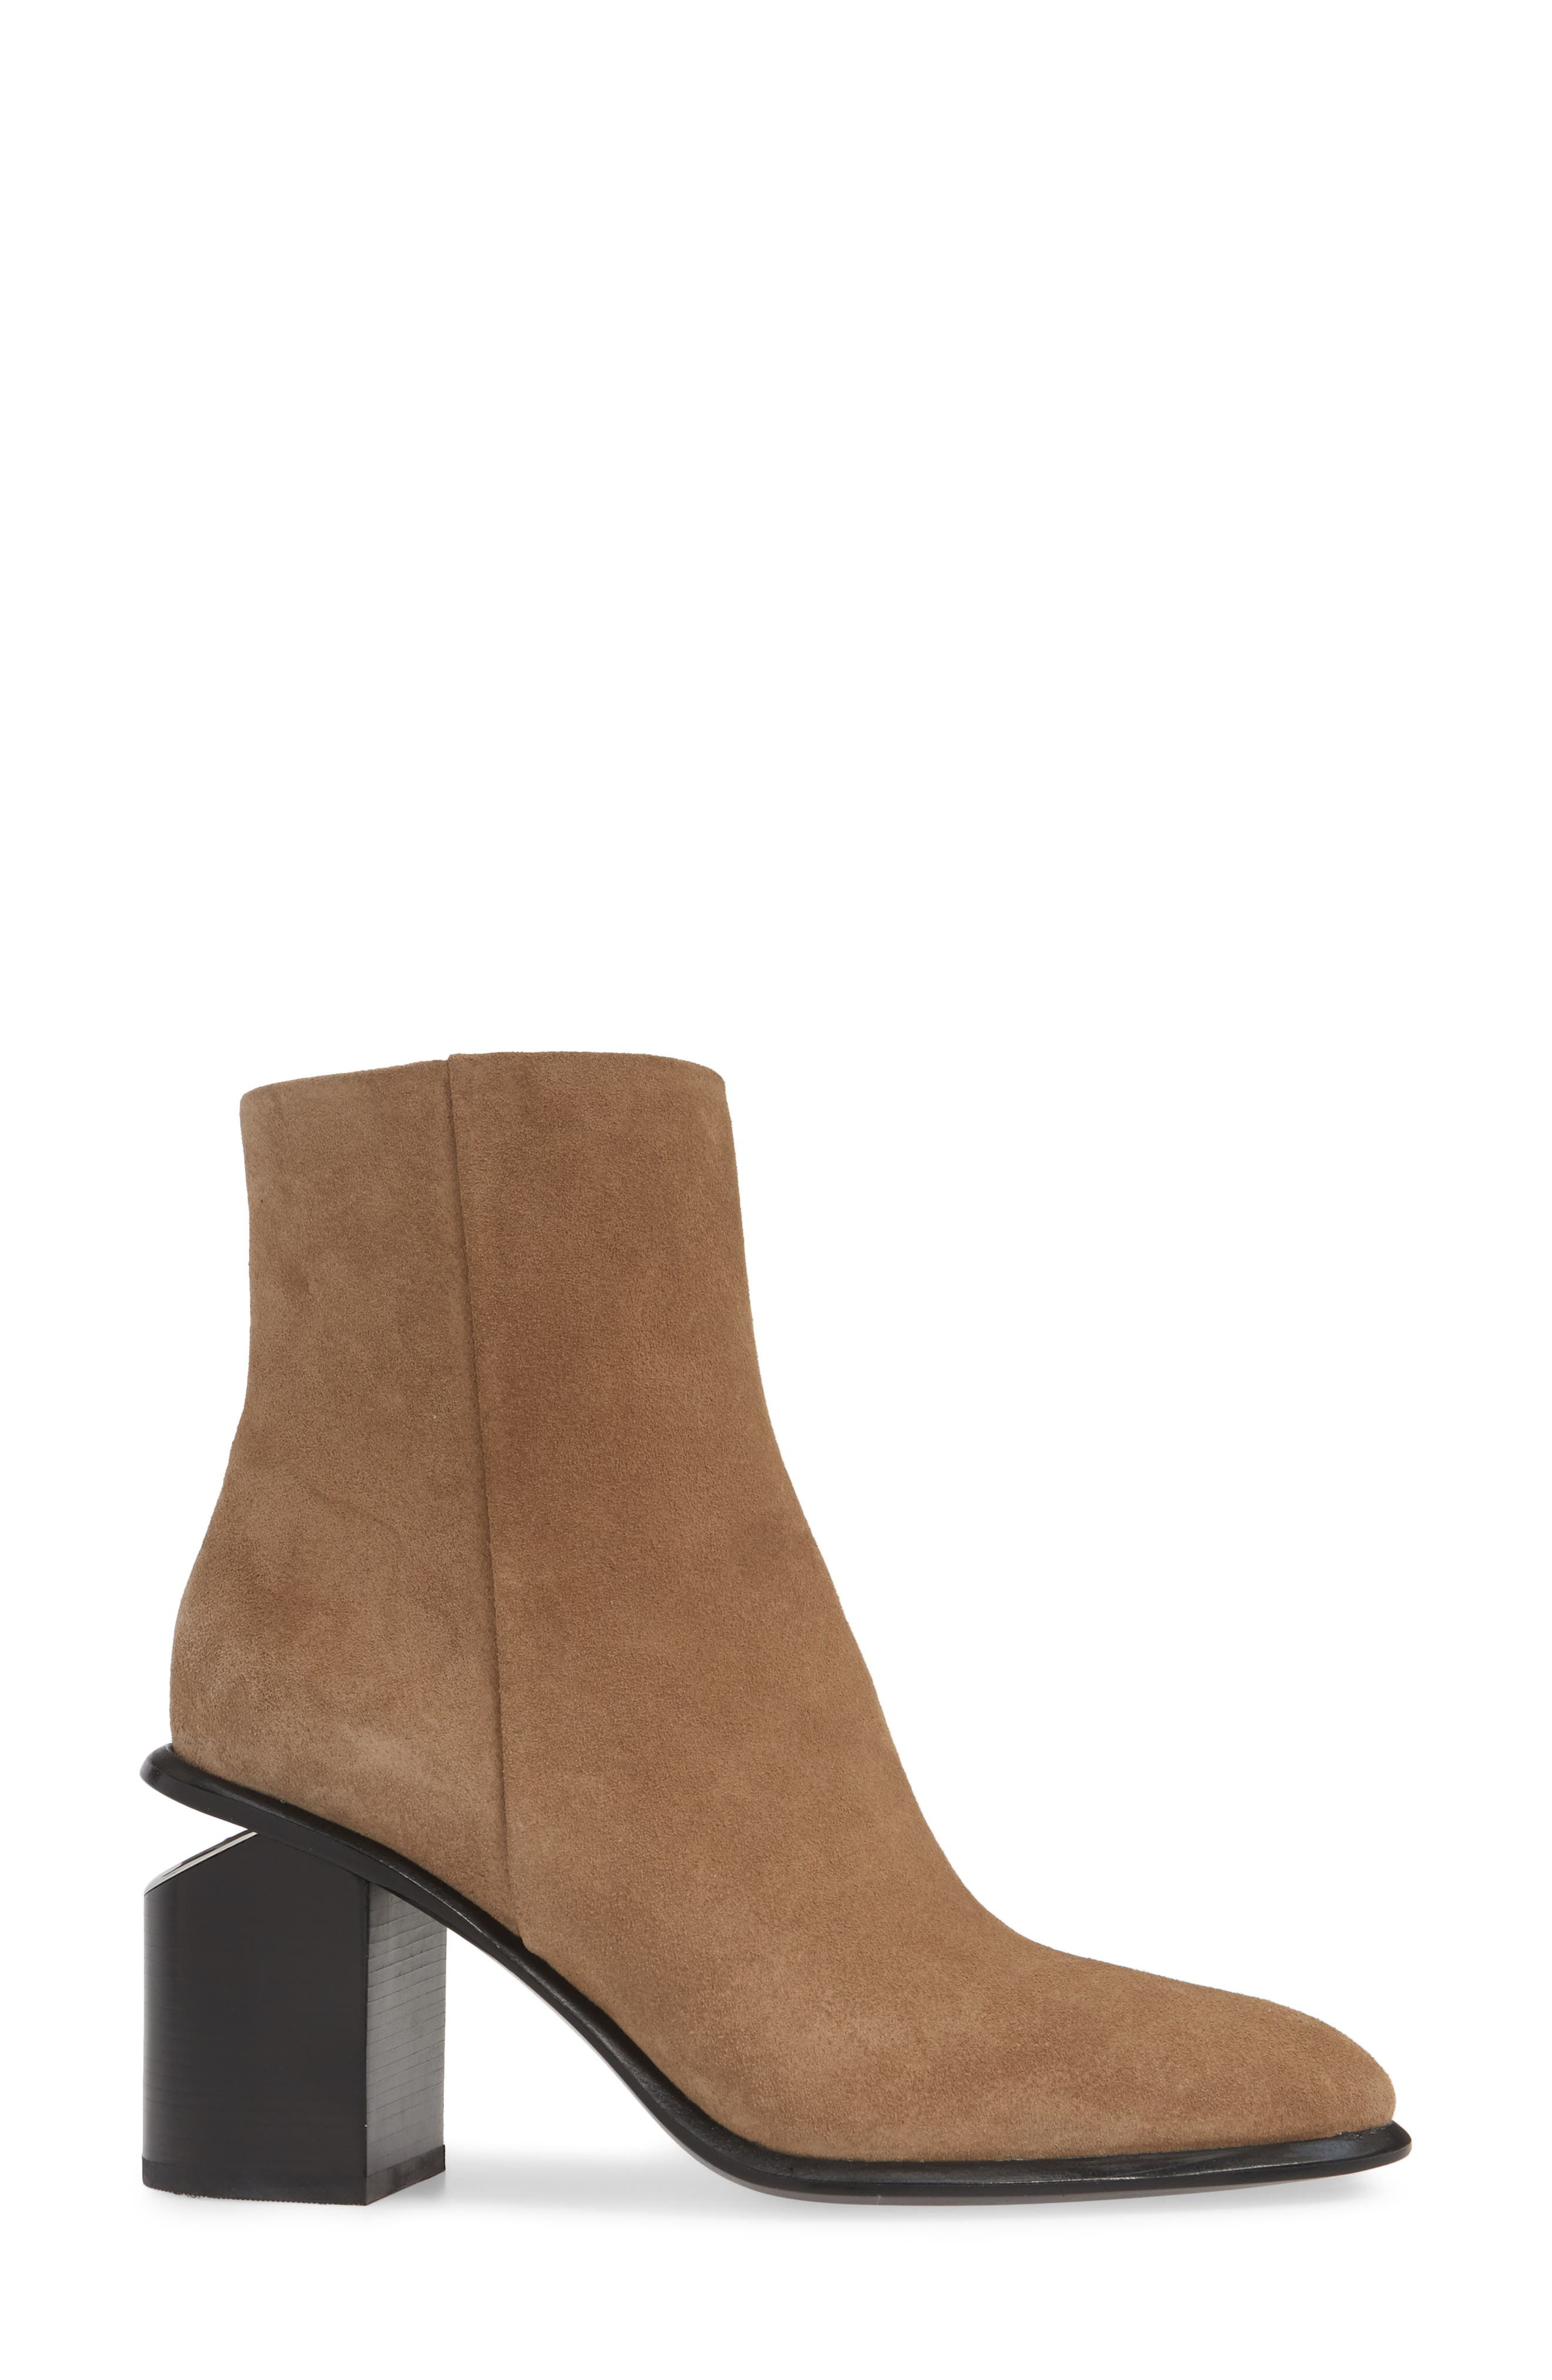 ALEXANDER WANG, Anna Mid Bootie, Alternate thumbnail 3, color, SAND SUEDE